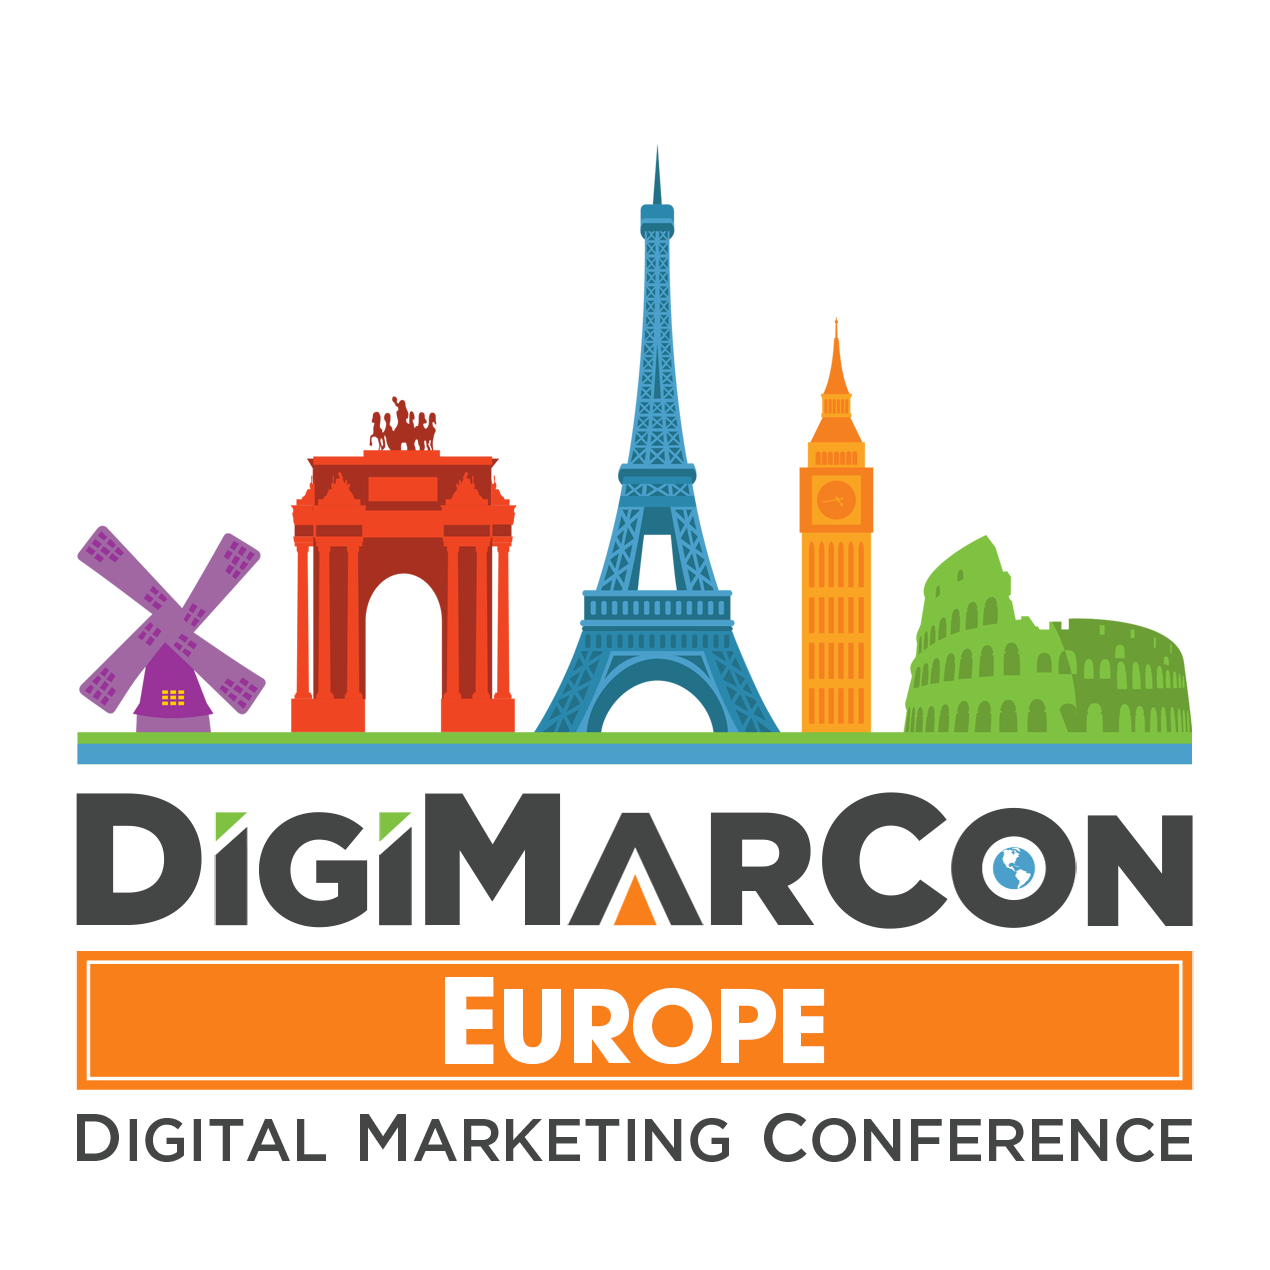 DigiMarCon Europe 2022 – Digital Marketing, Media and Advertising Conference & Exhibition